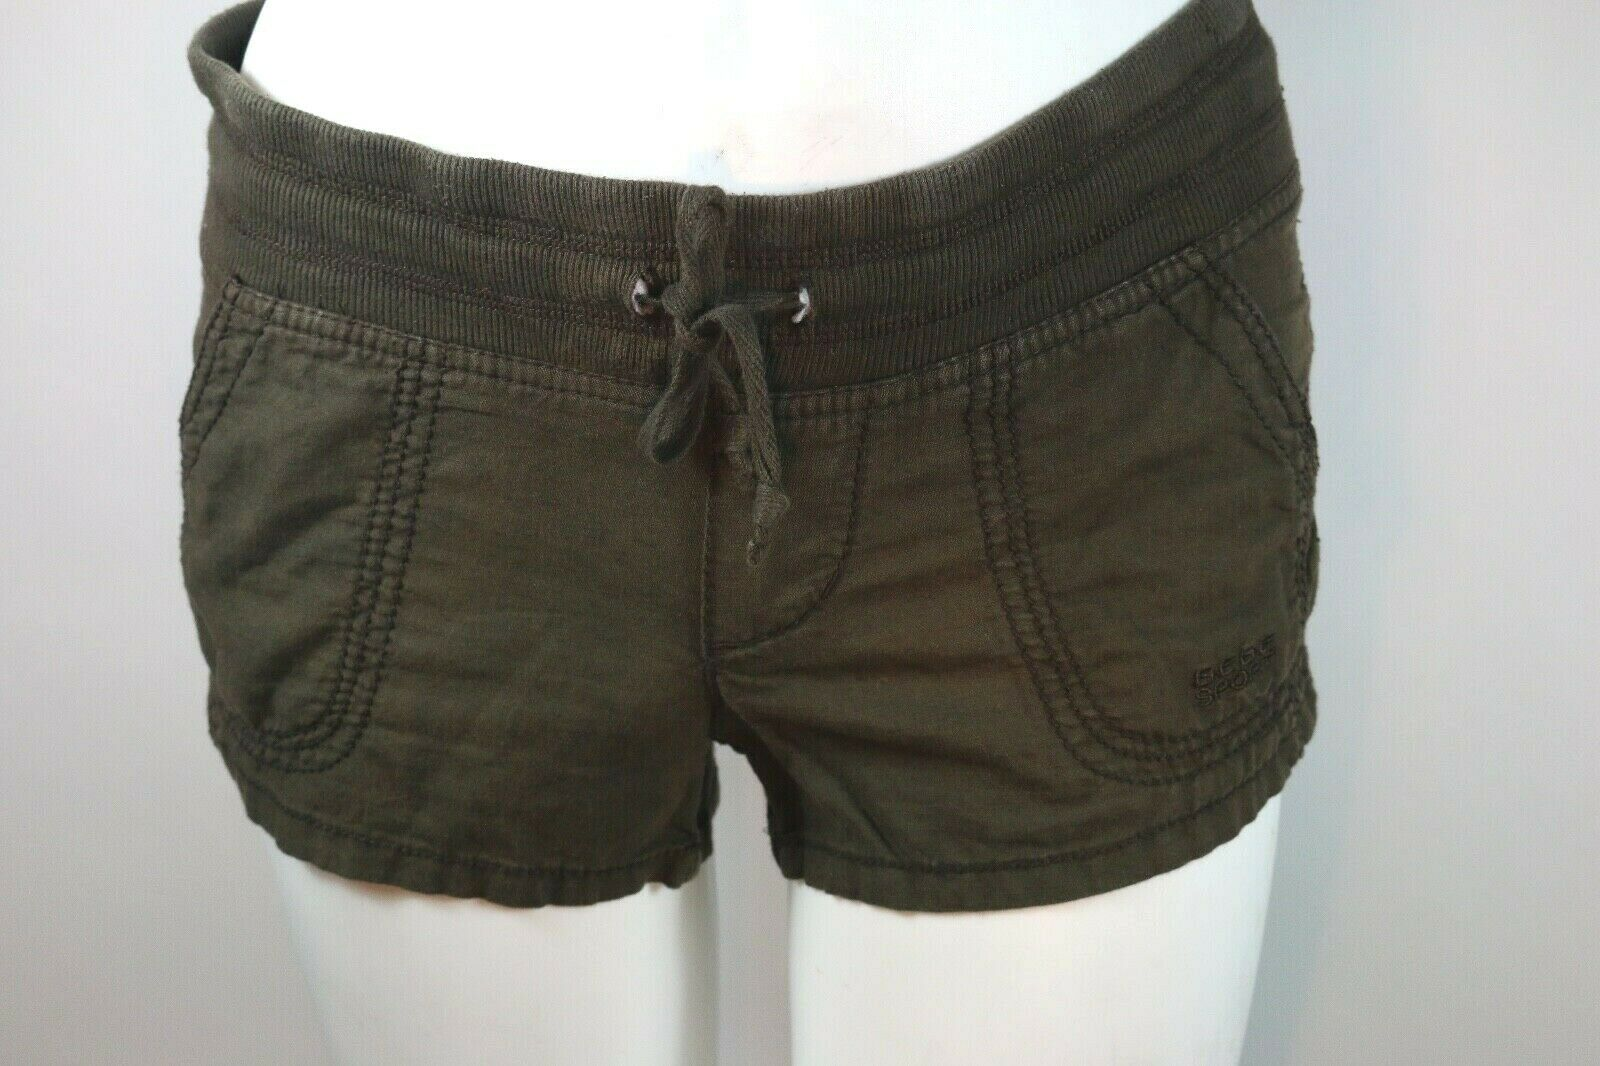 Size XS BEBE Sport Brown Shorts Women Linen Cotton Extra Small